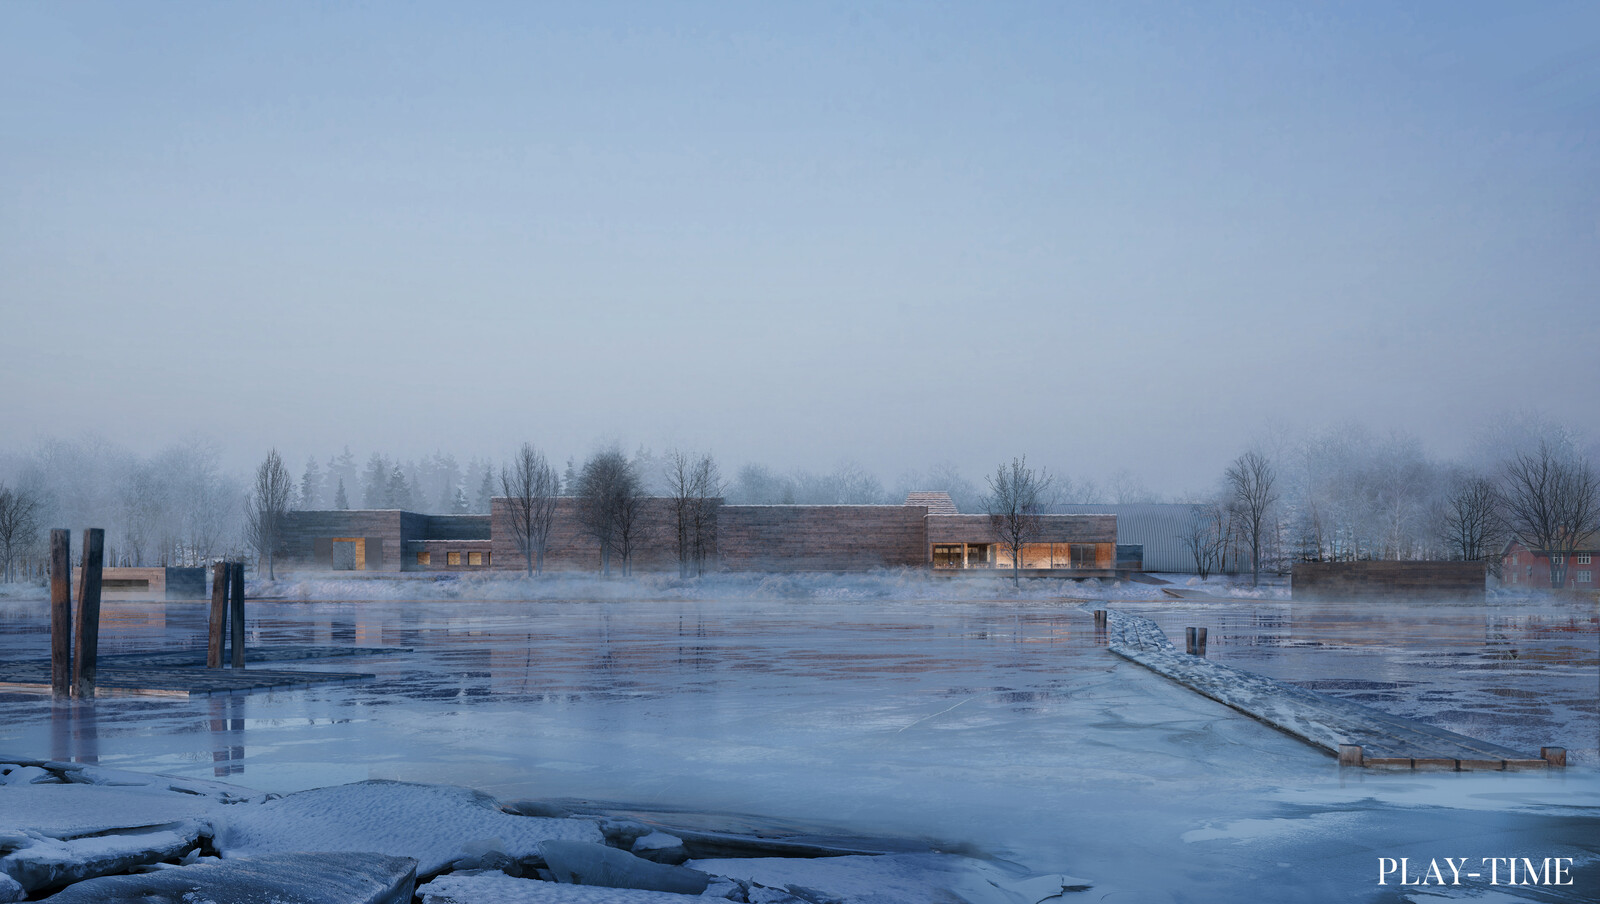 MIA Museum in Akershus, Norway. Log driving museum designed by NOMO Studio. Image by Play-time